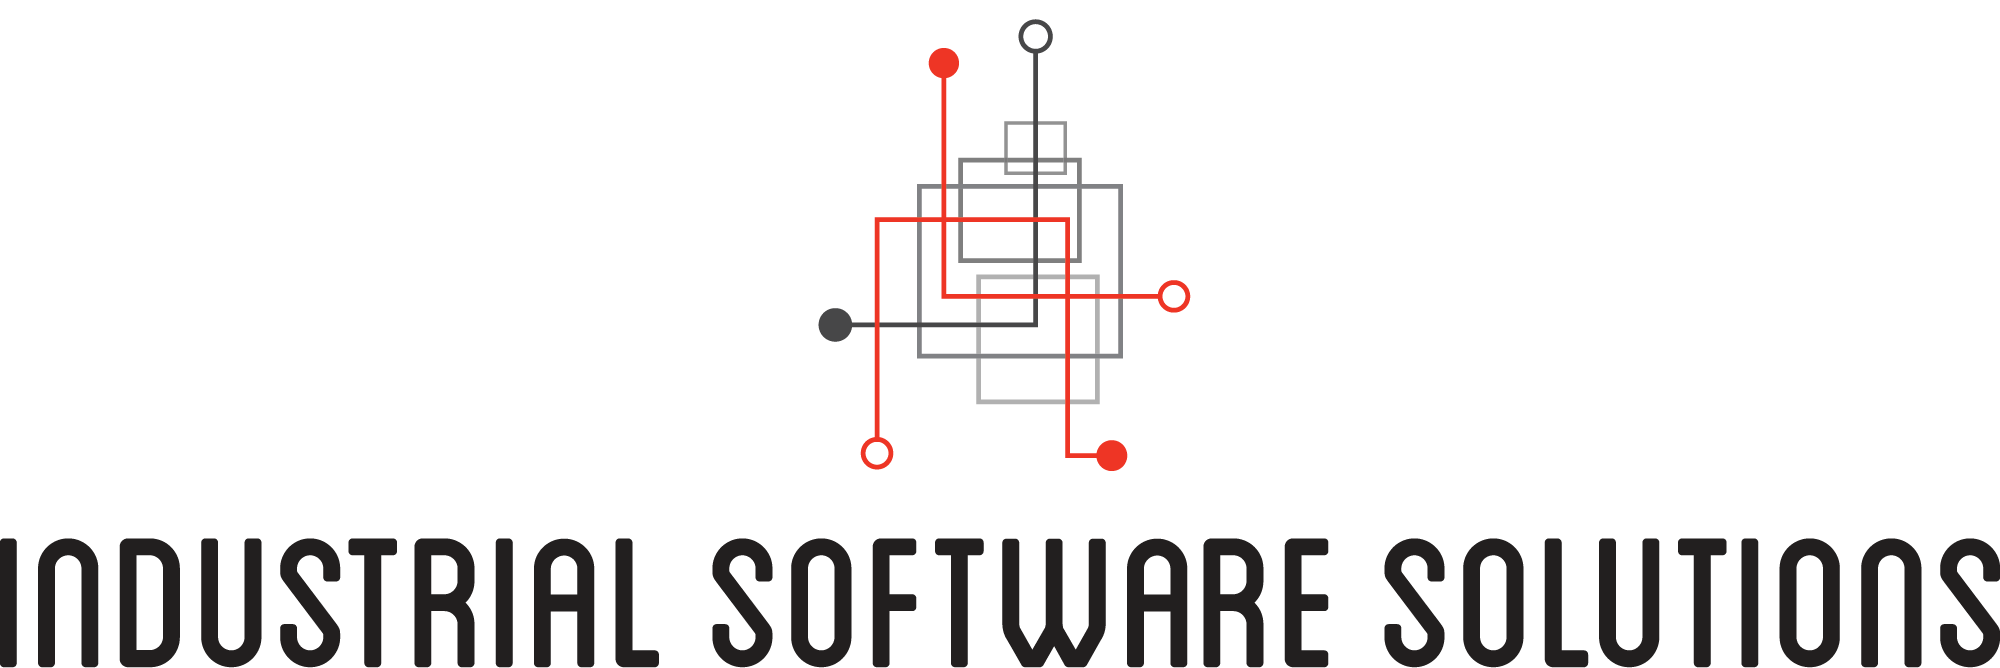 Industrial Software Solutions Logo